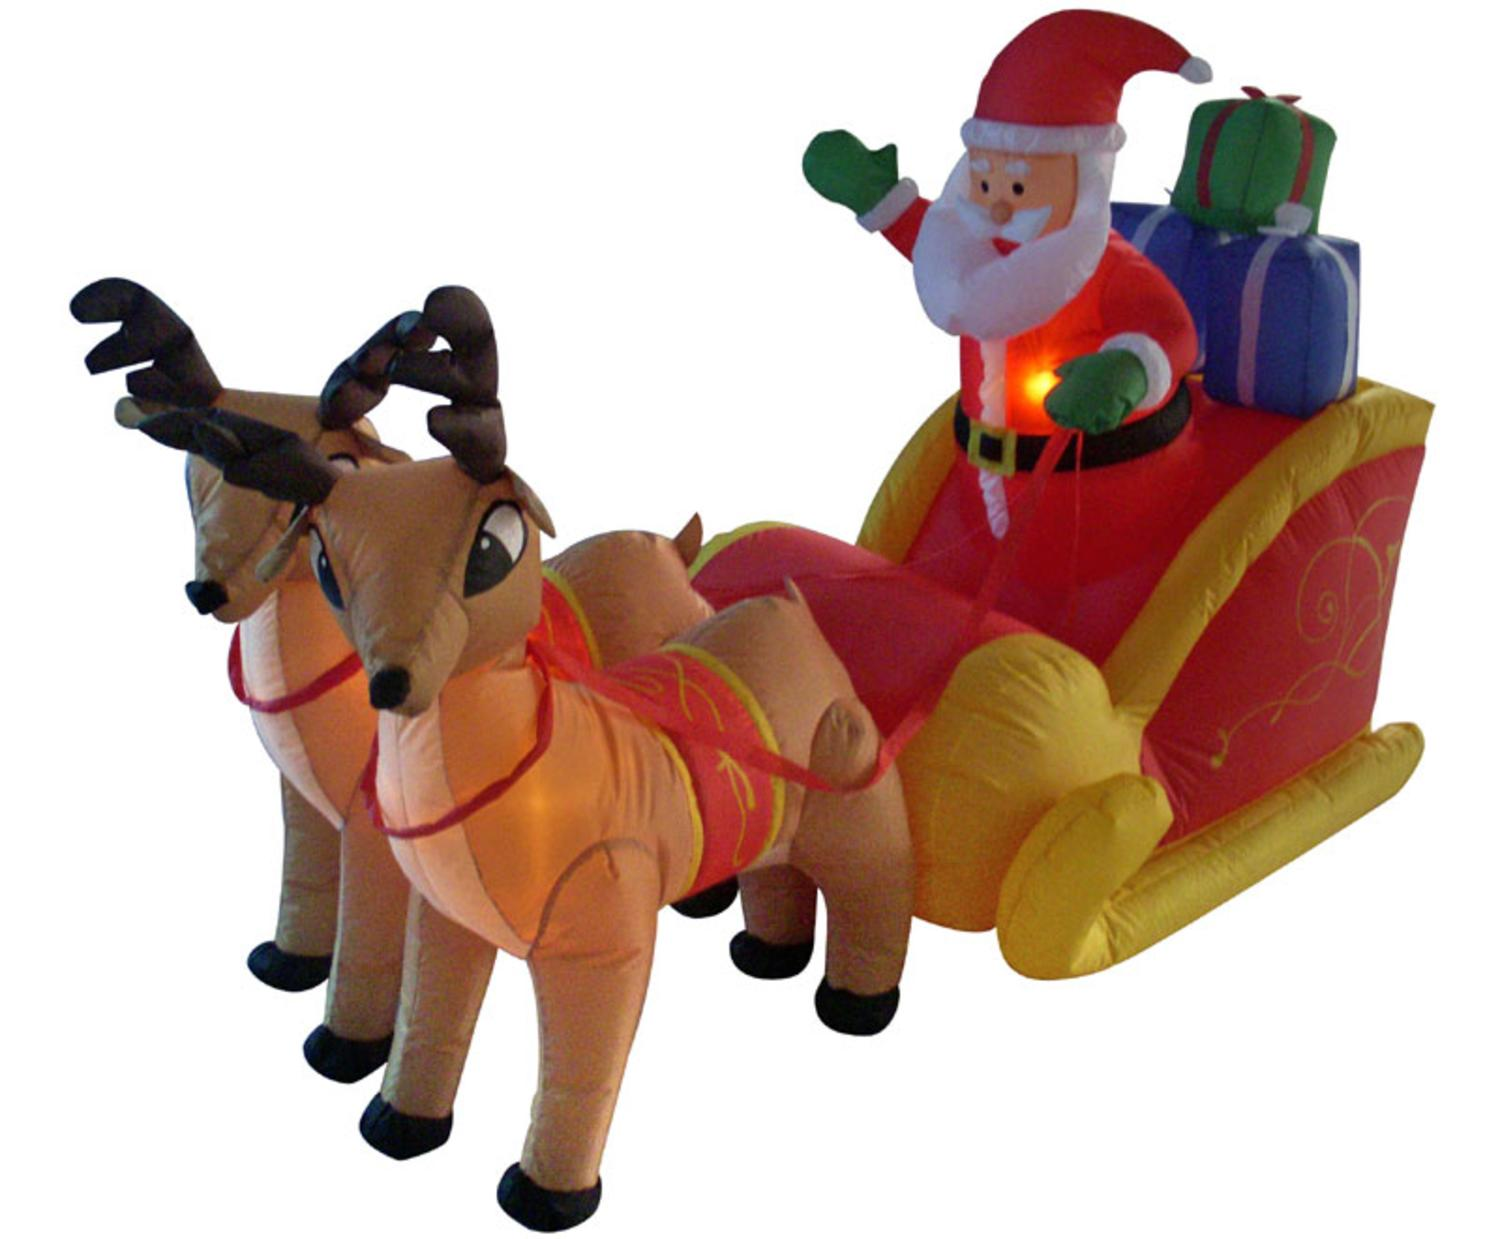 4u0027 Inflatable Santa, Sleigh U0026 Reindeer Lighted Christmas Yard Art Decor    Walmart.com